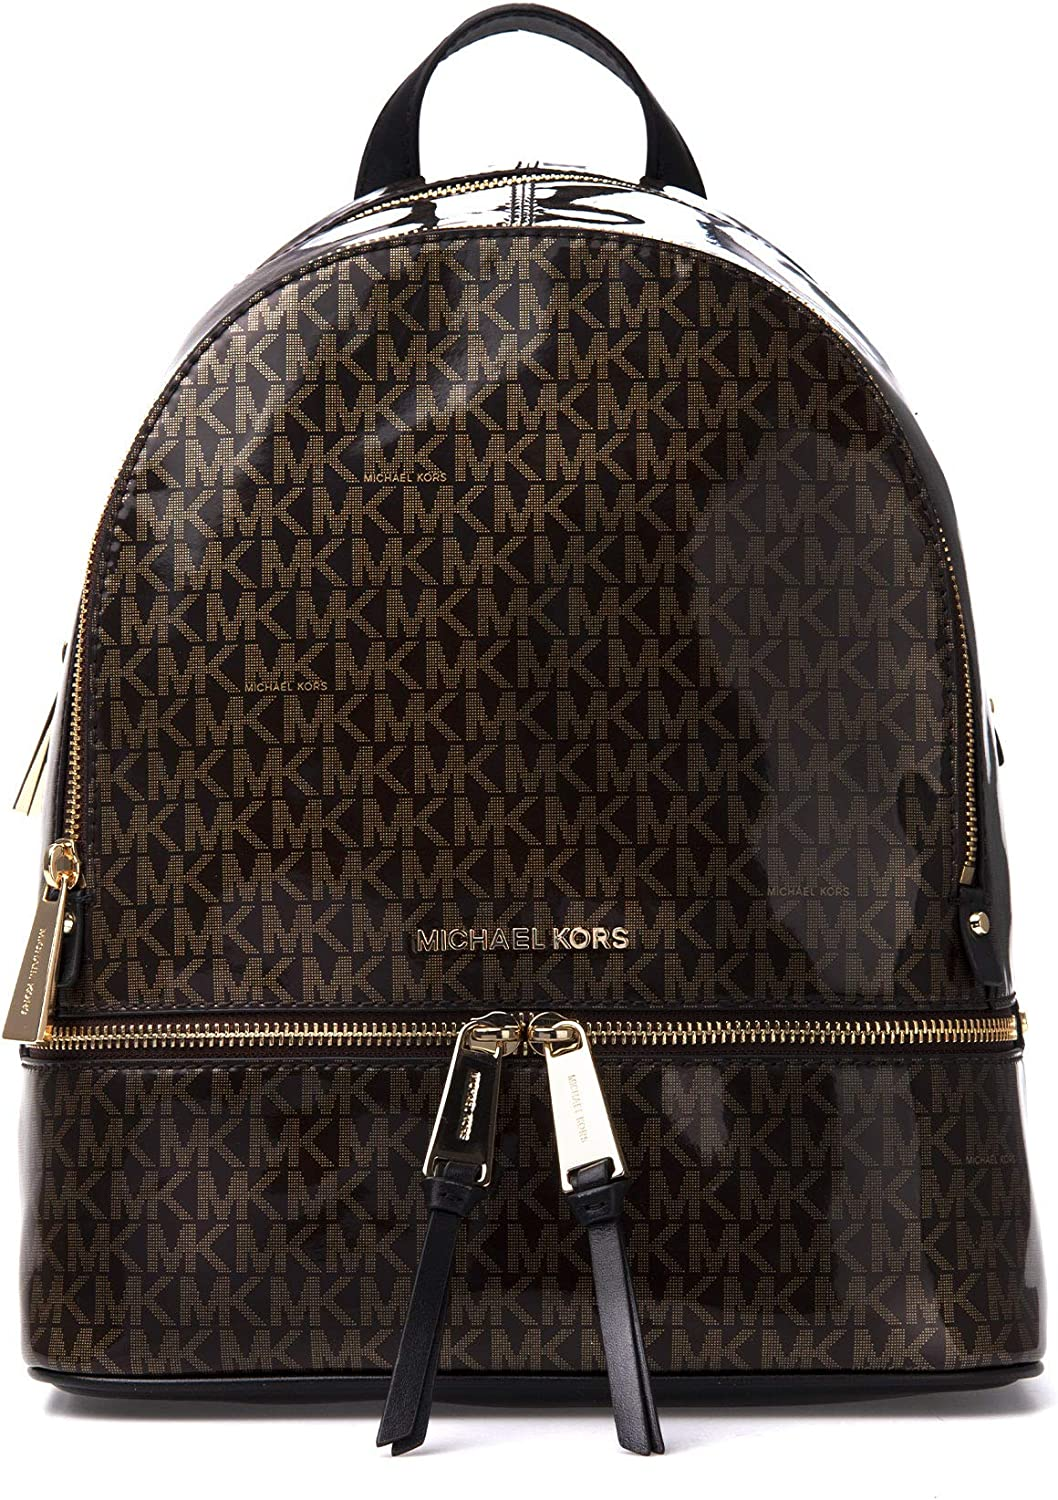 Michael Kors Rhea Medium Leather Backpack (Glossy Brown)